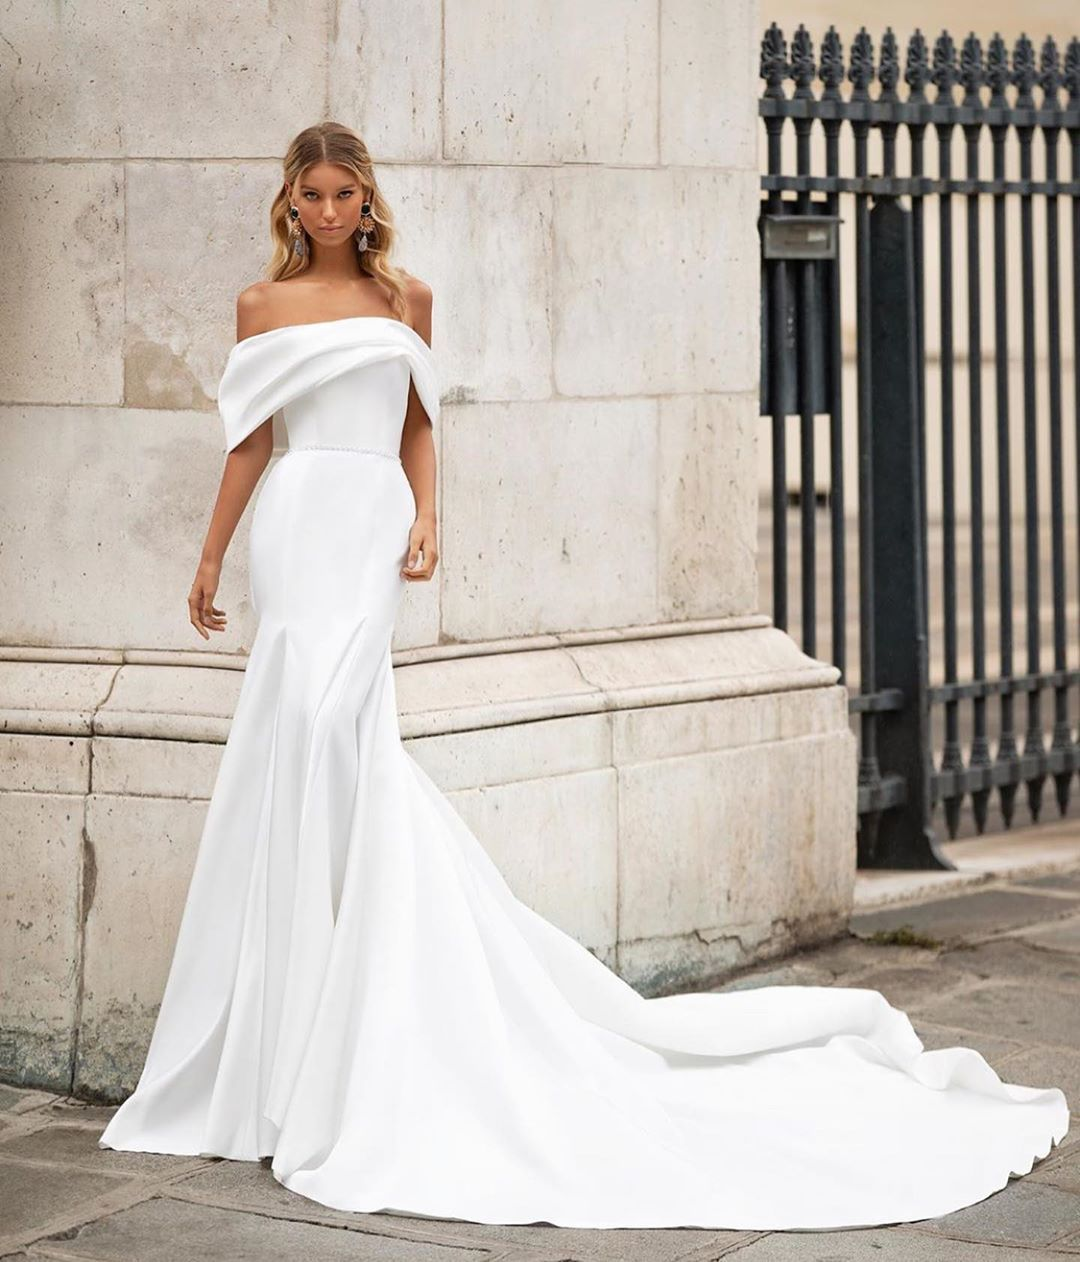 25 unique wedding dresses will inspire you in 2020